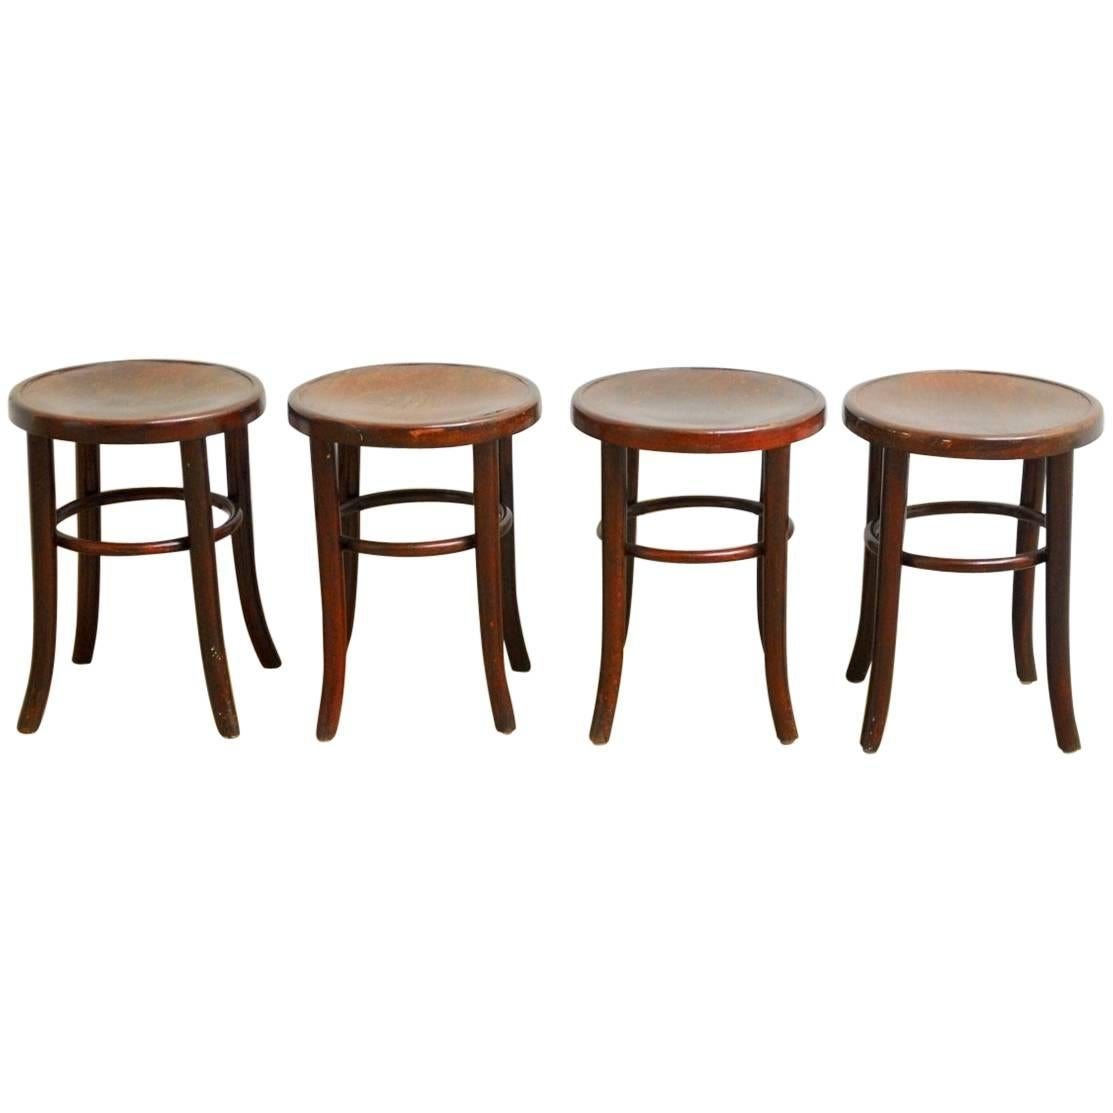 Set Of Four Gebruder Thonet Bentwood Bistro Stools Thonet Bar Stool57